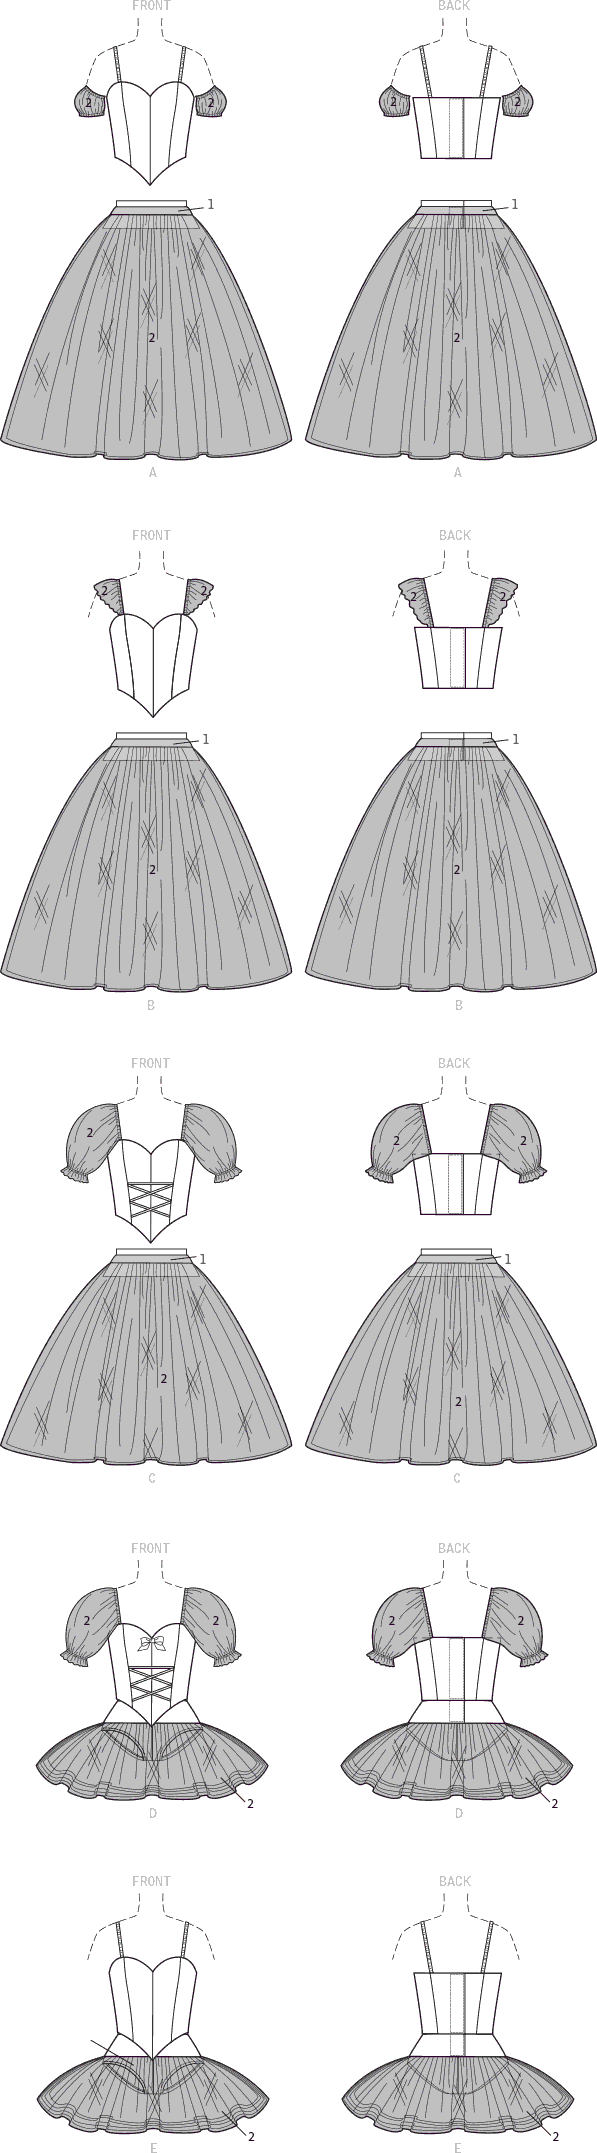 McCall's Pattern M7615 Misses Ballet Costumes with Fitted Boned Bodice and Skirt and Sleeve Variations 7615 Line Art From Patternsandplains.com